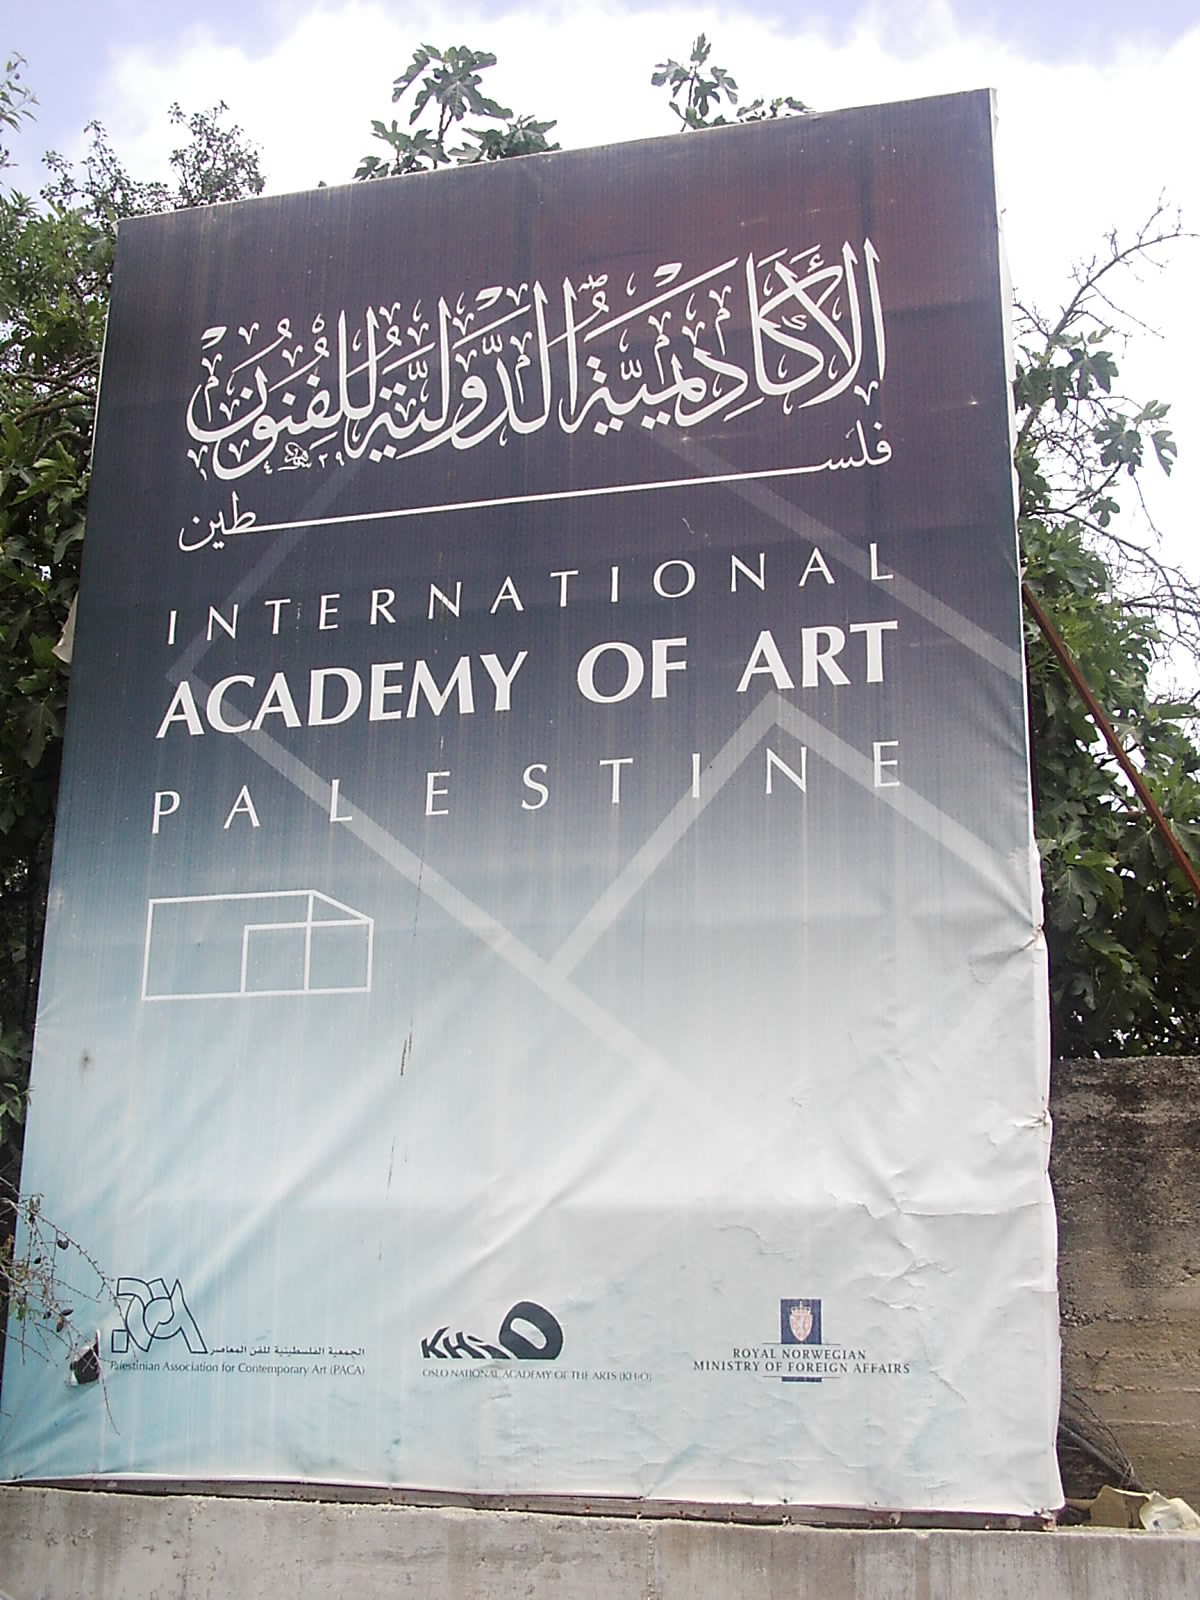 Journalist from Art-Transmitter visits Academy of Art Palestine